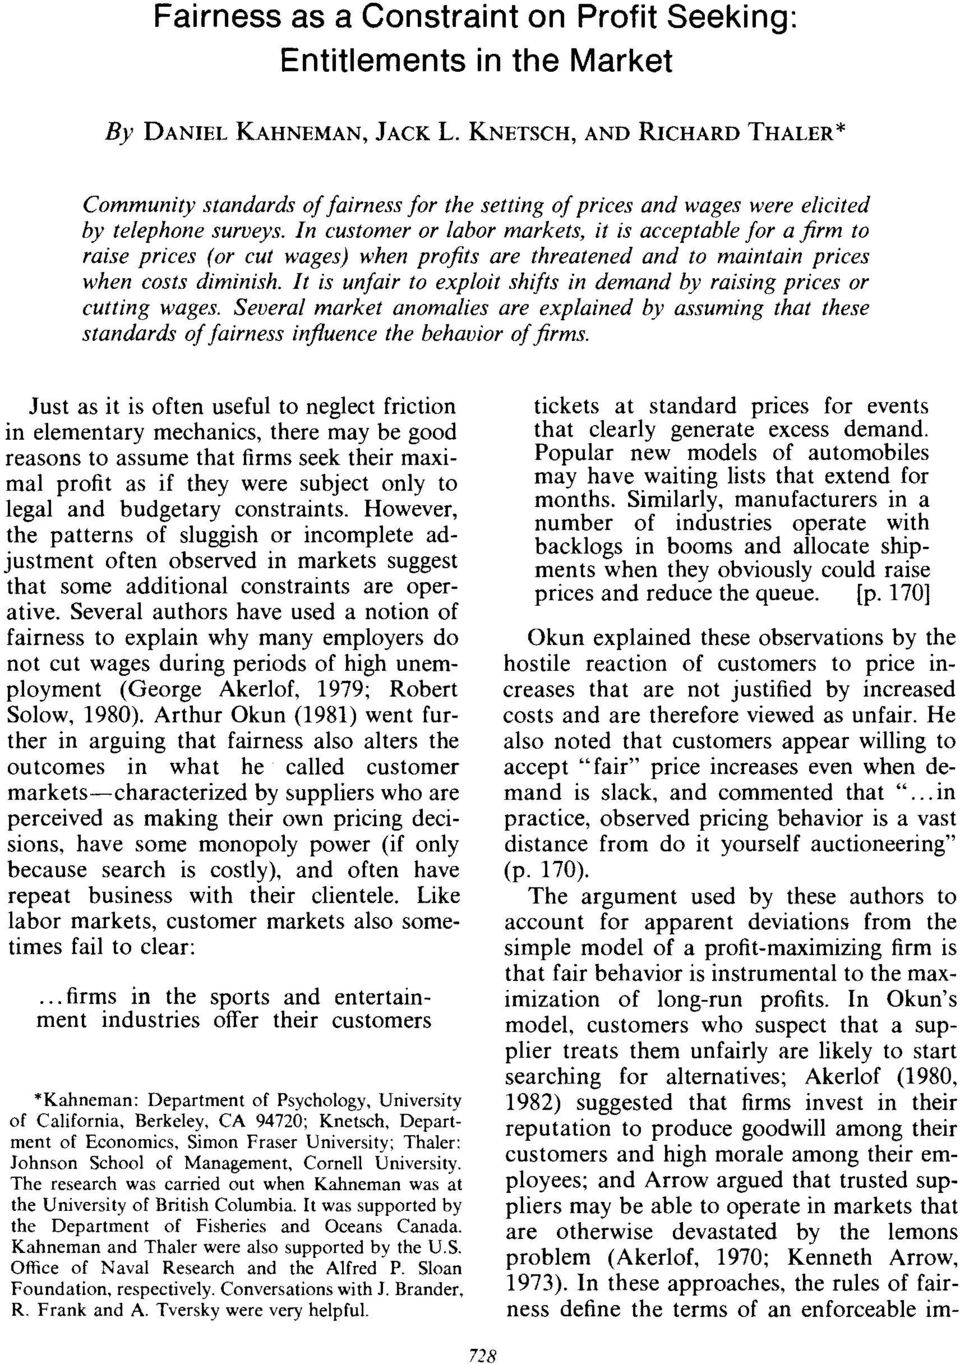 It is unfair to exploit shifts it2 den~atzd by raising prices or cutting wages. Seueral market arzomalies are explained by ussumitzg that these standards of fairness influence the behavior of firms.